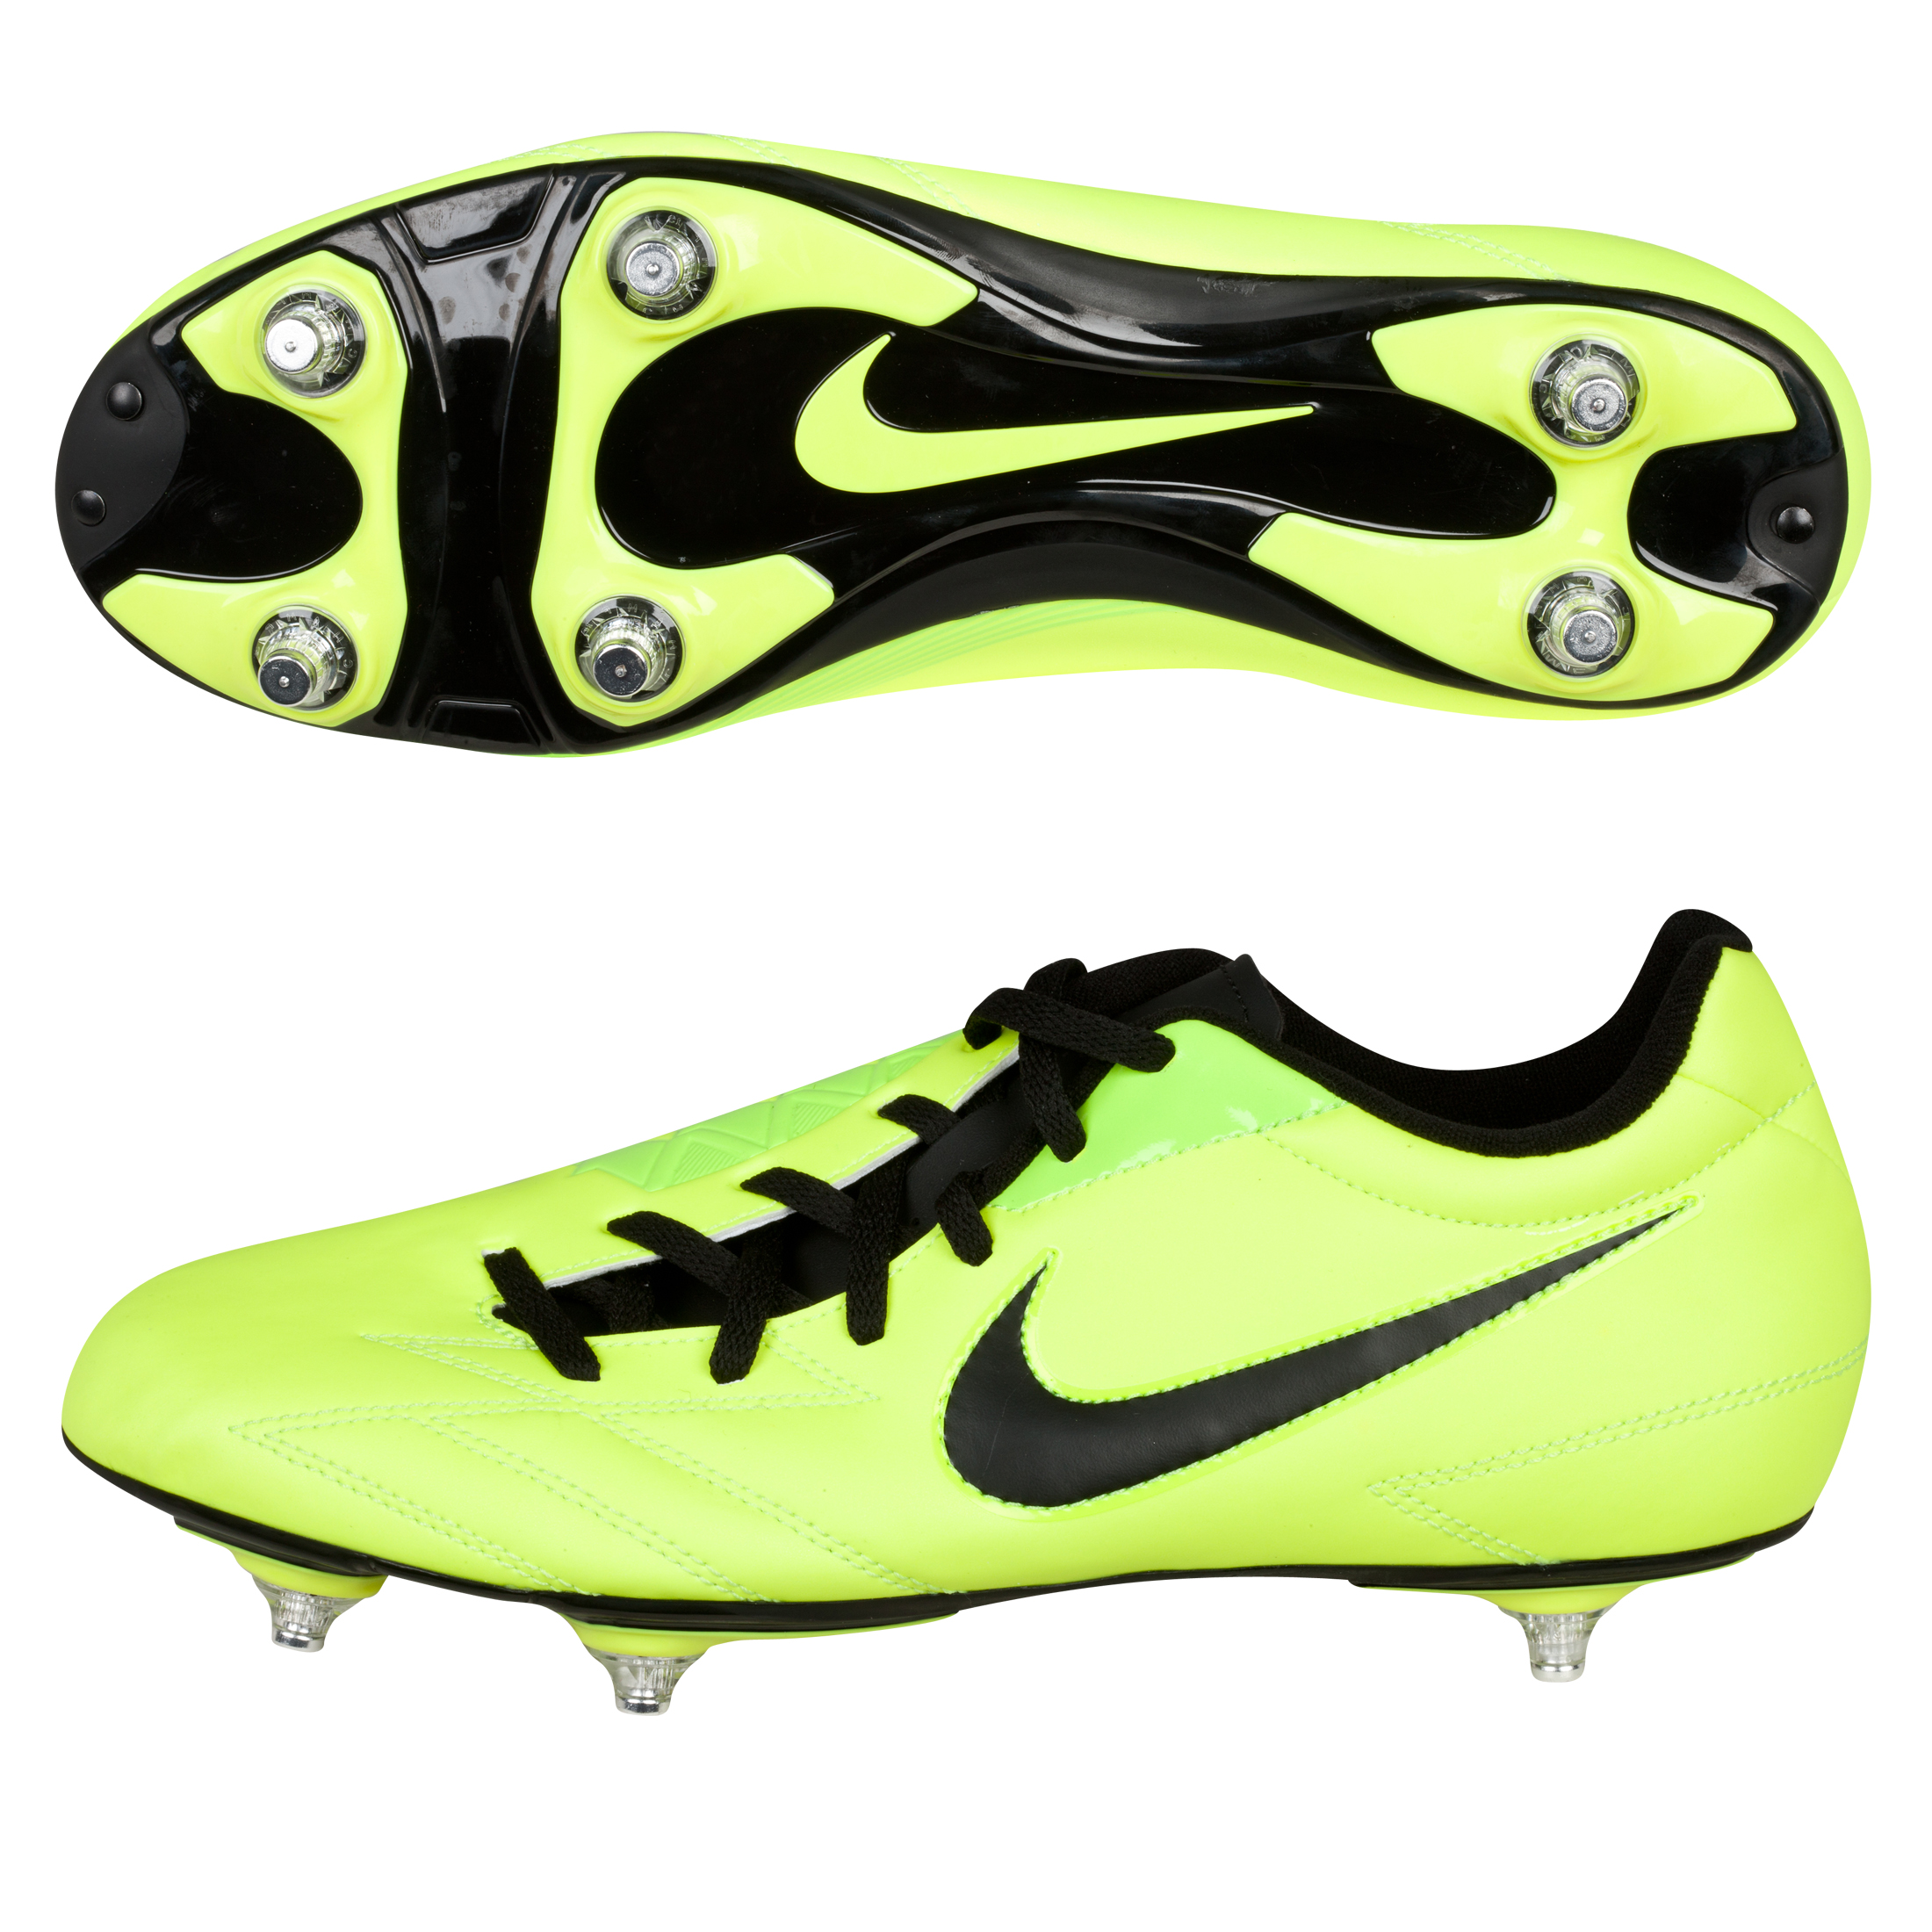 Nike Total90 Exacto IV Soft Ground Football Boots -  Volt/Black/Citron